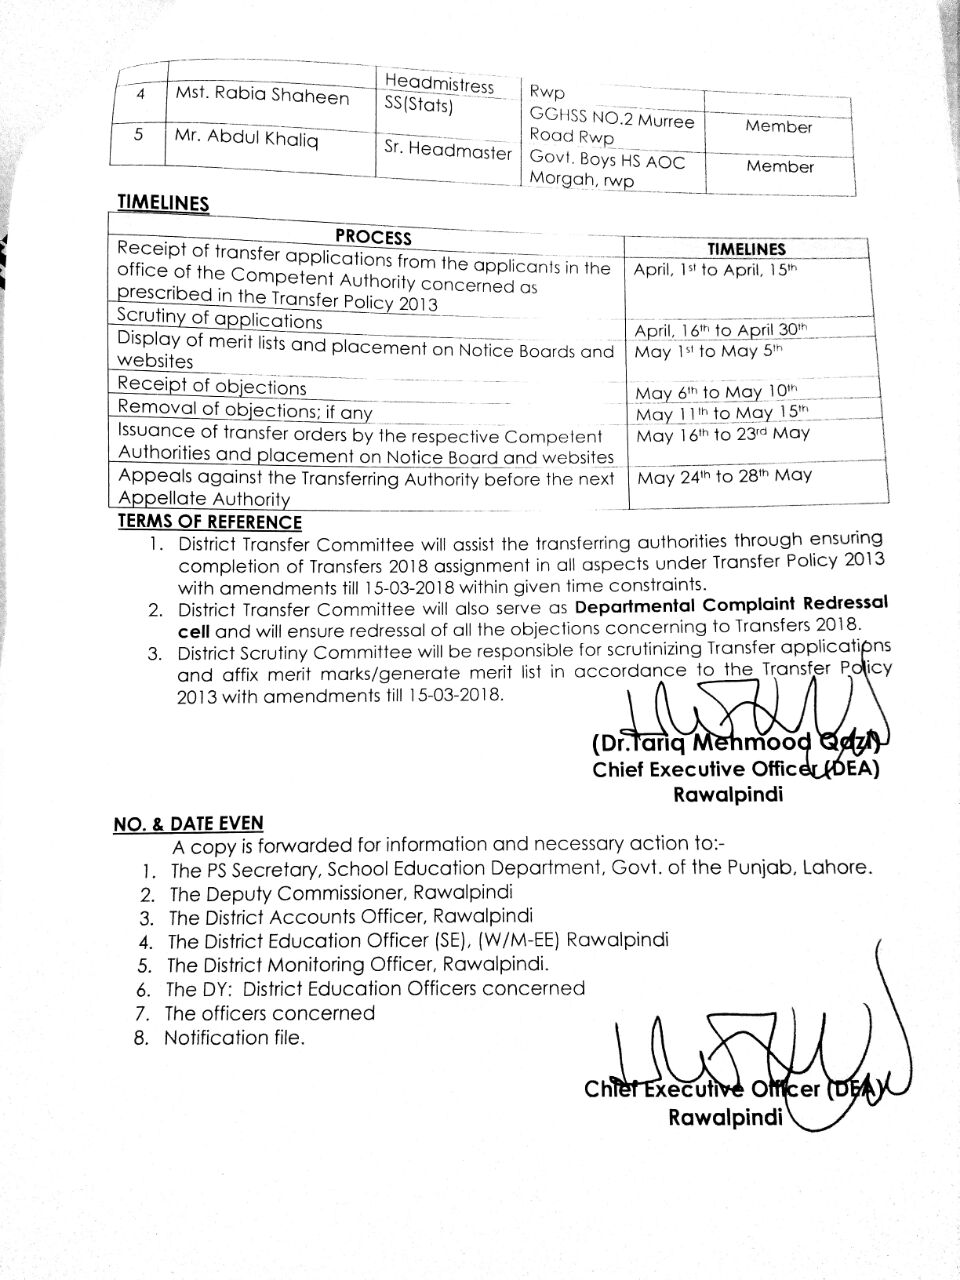 CONSTITUTION OF COMMITTEE'S FOR TRANSFERS 2018 IN RAWALPINDI